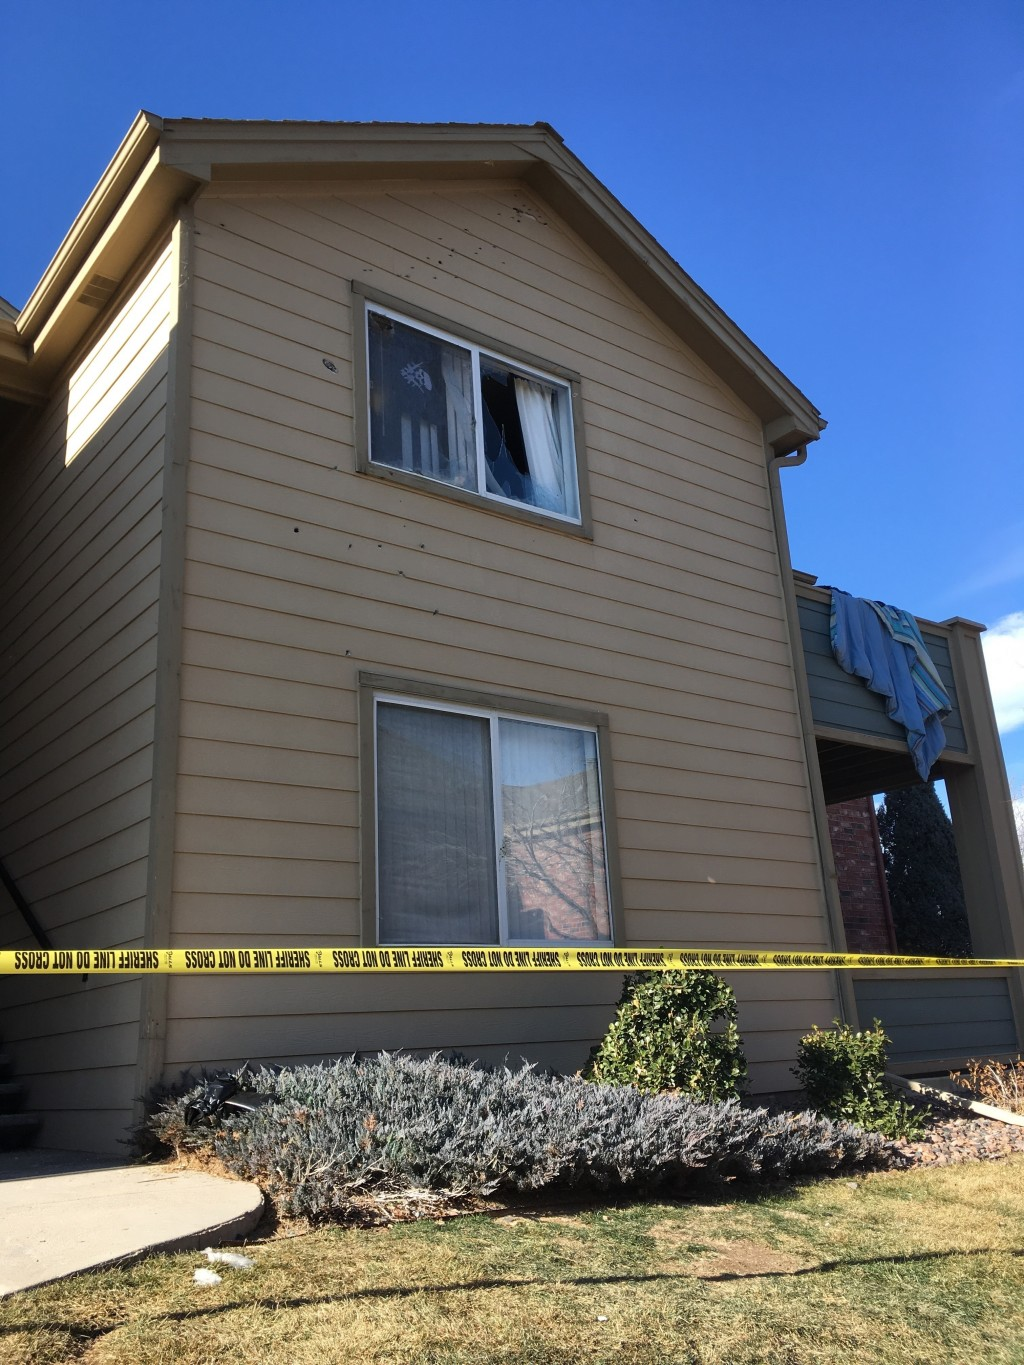 FILE - In this Jan. 1, 2018, file photo, Deputy Zack Parrish's a suburban Denver apartment building where he was fatally shot is riddled by bullet hol